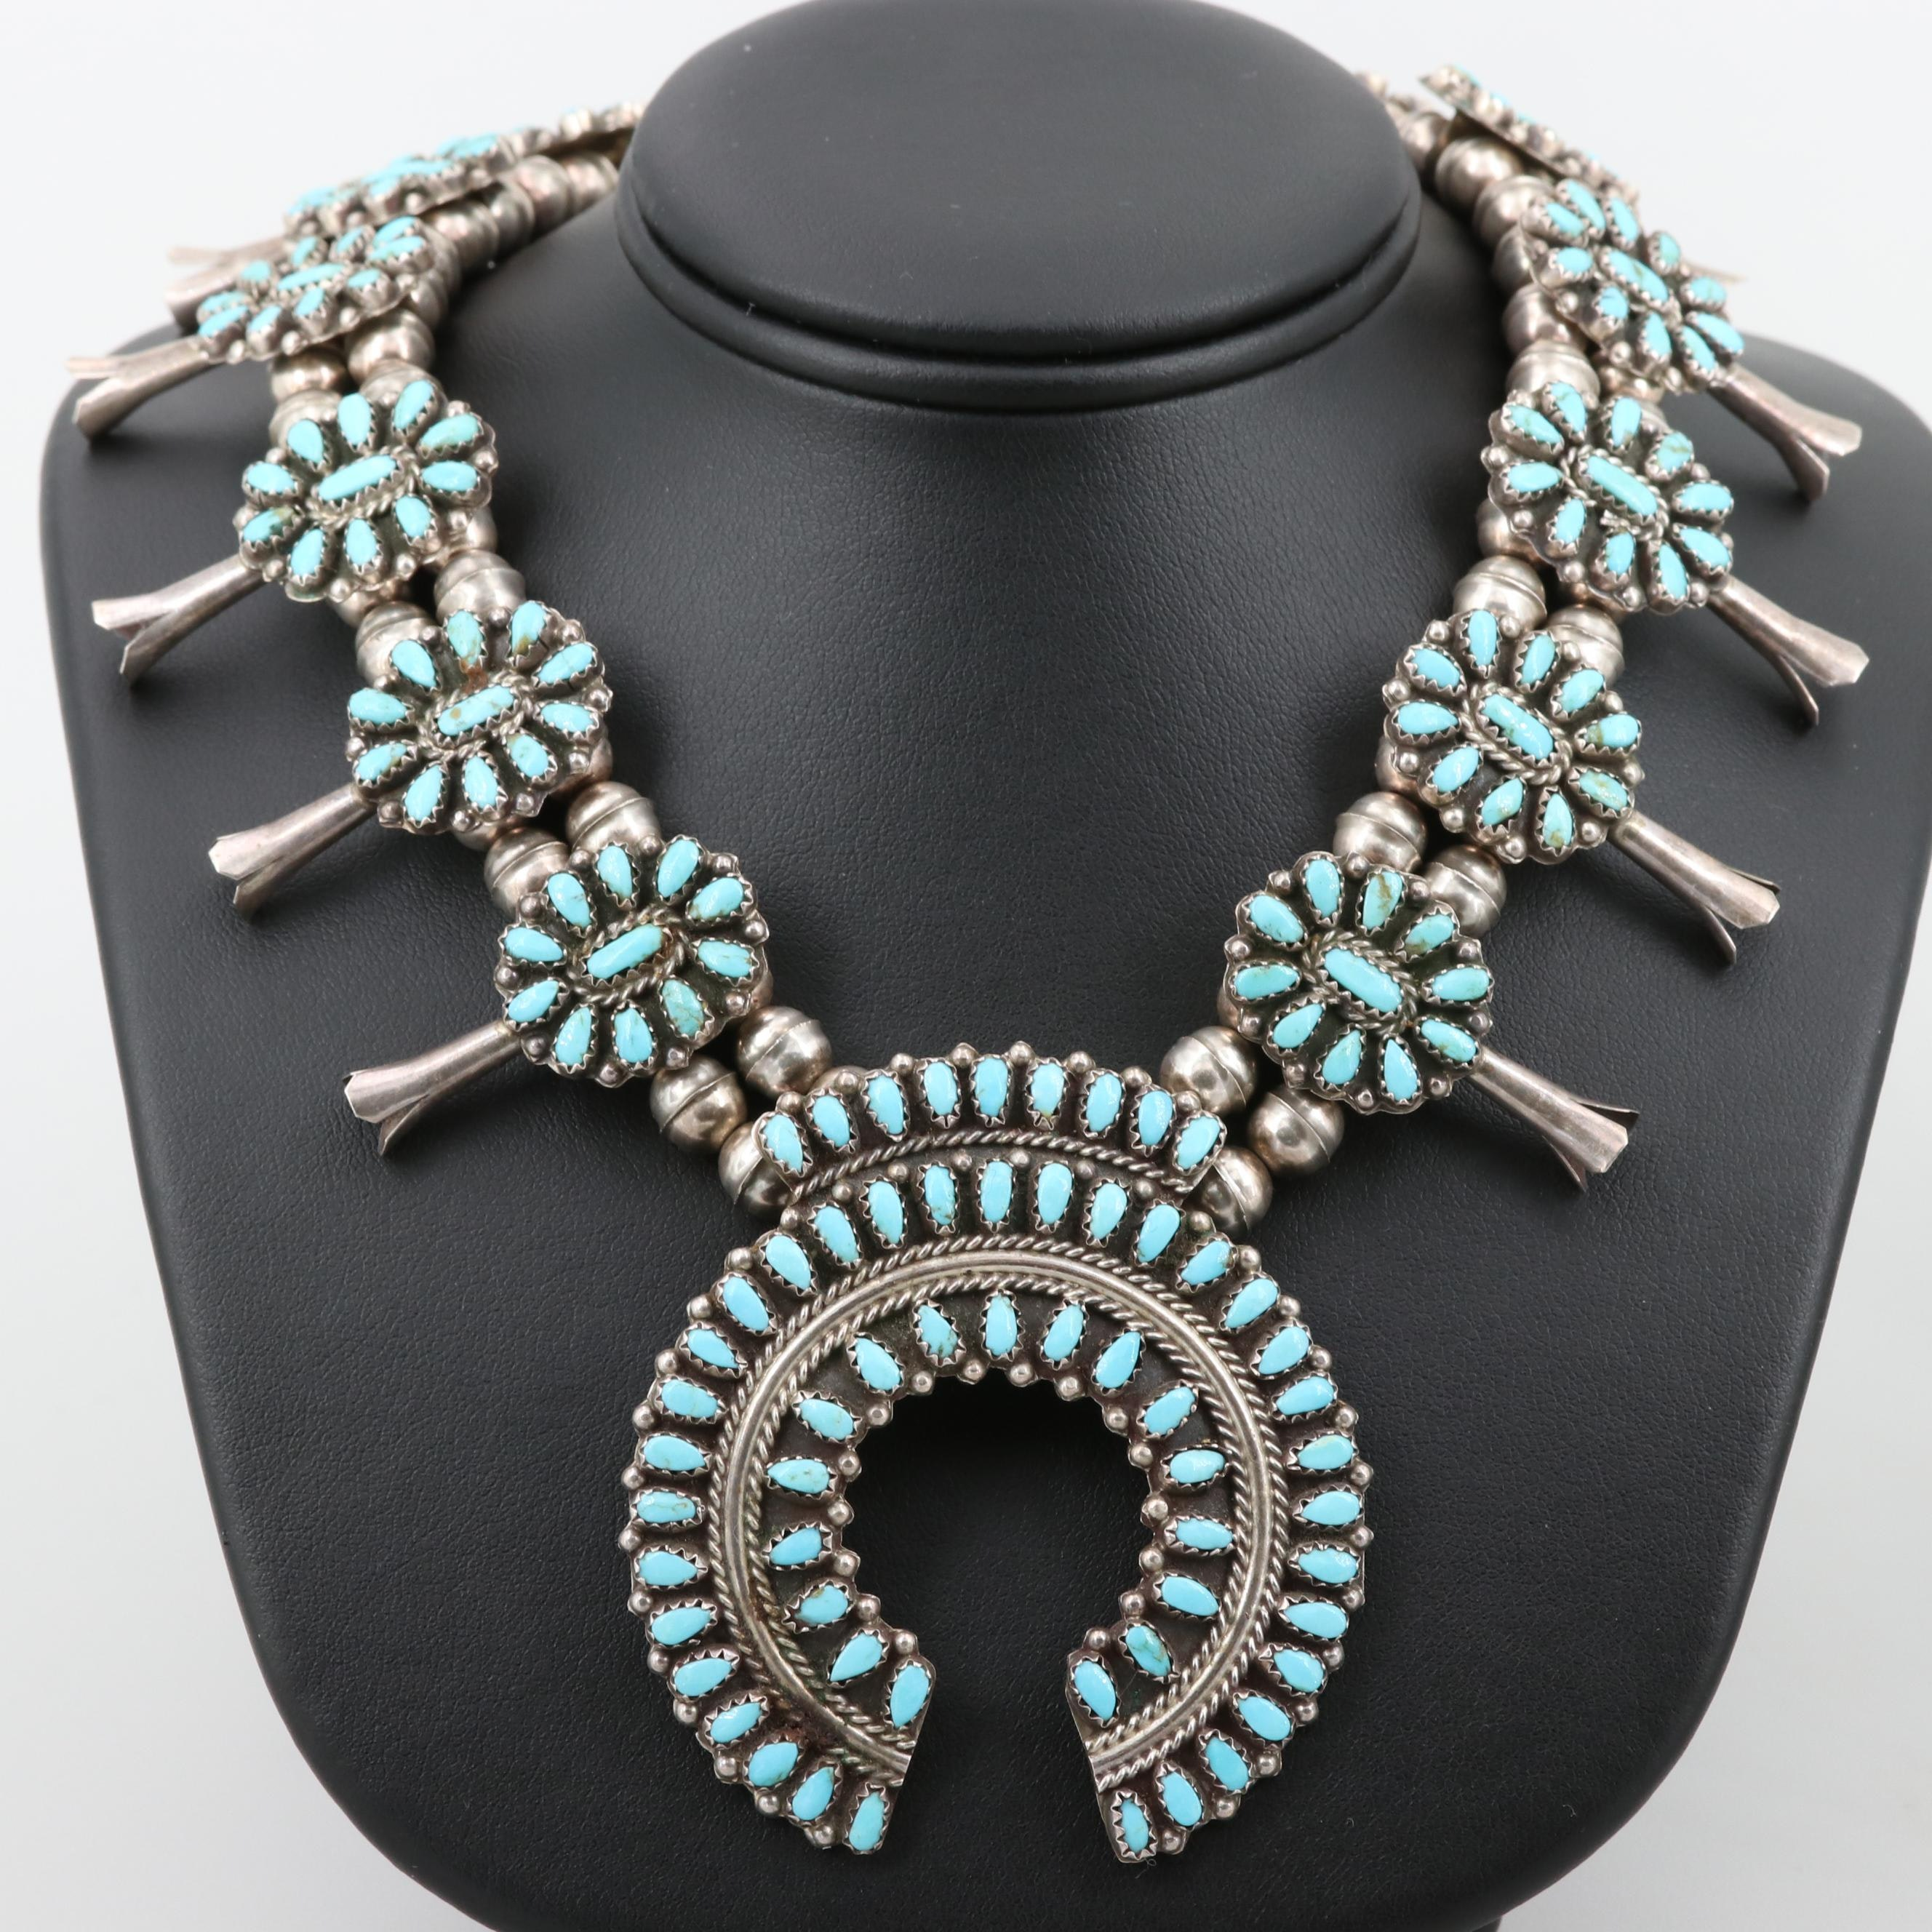 Benjamin James Navajo Diné Sterling Turquoise Squash Blossom Necklace